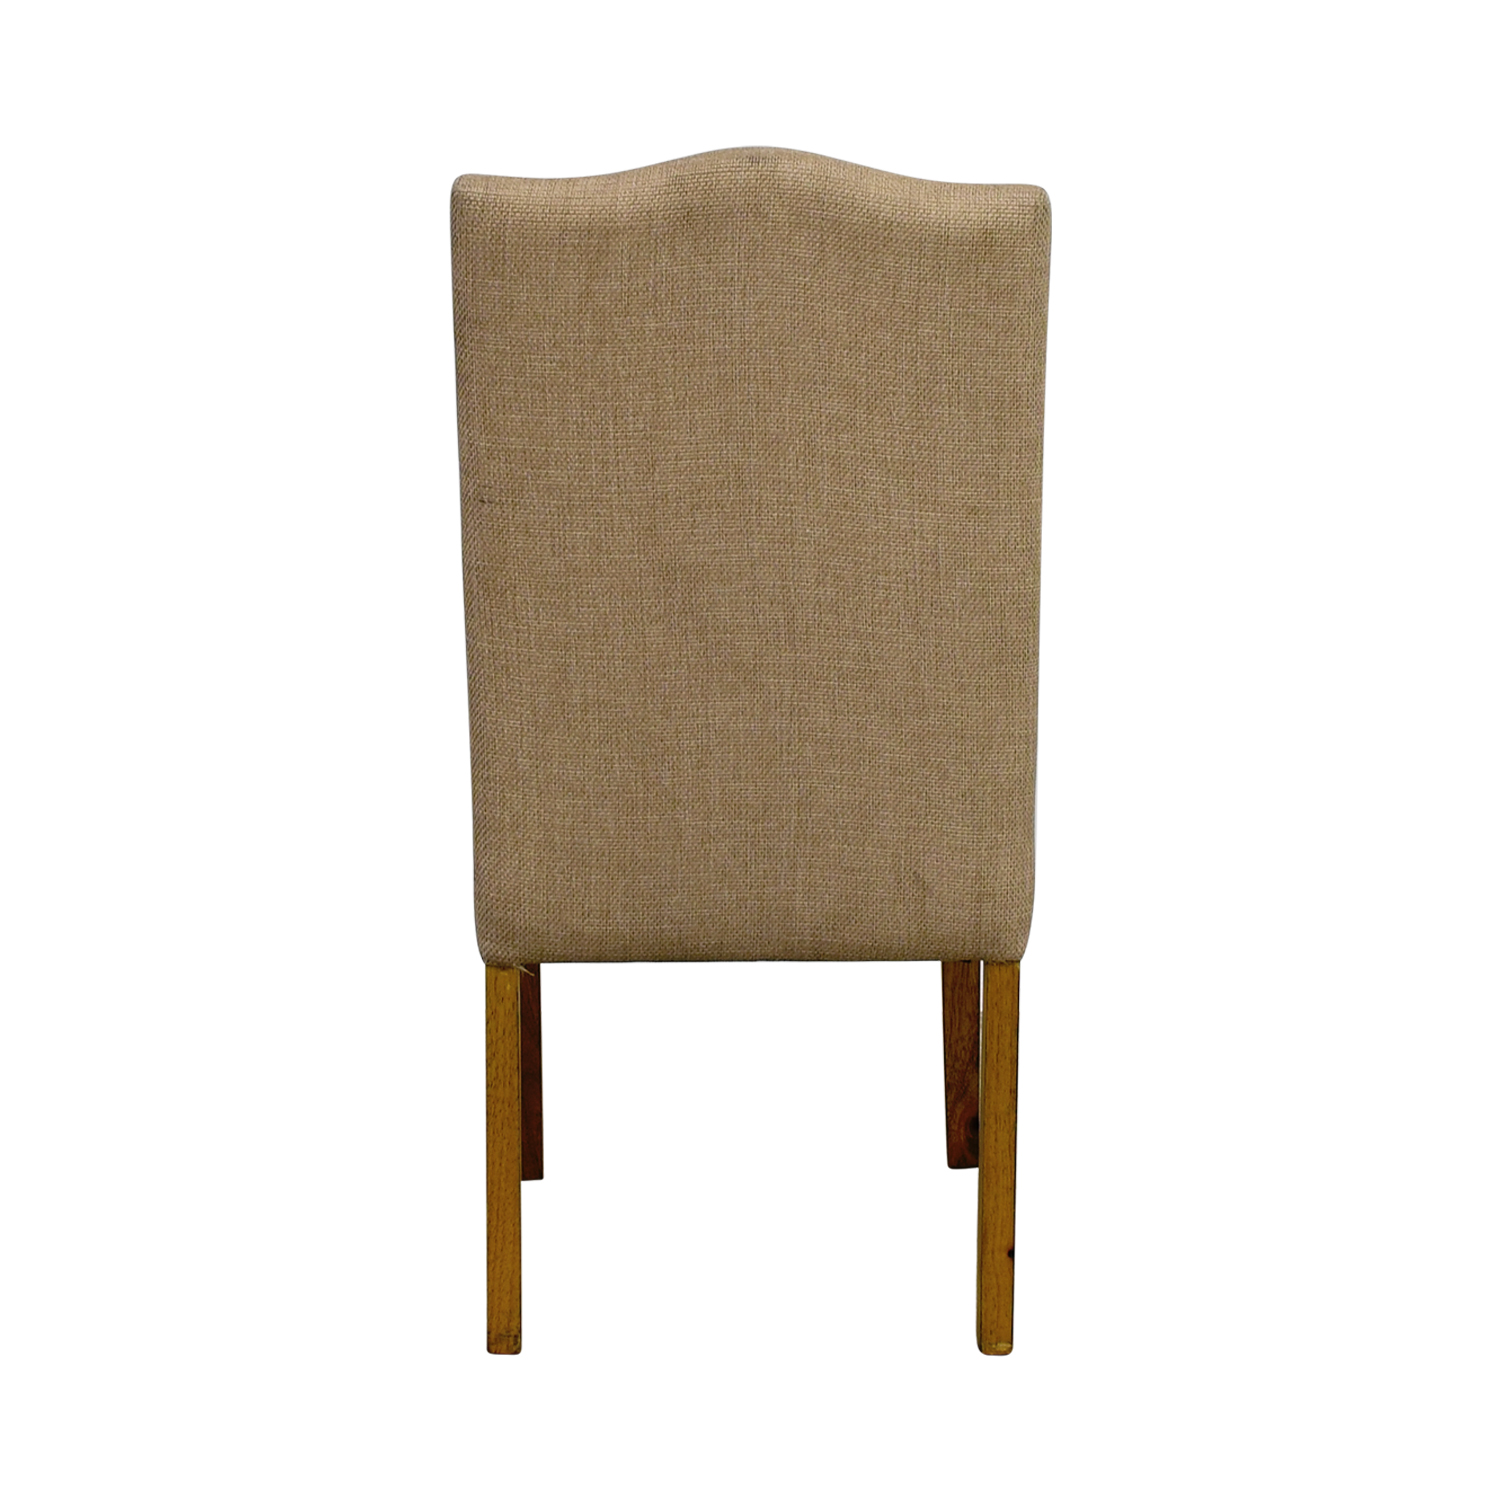 Beige High Back Chair with Nailhead Accent nyc